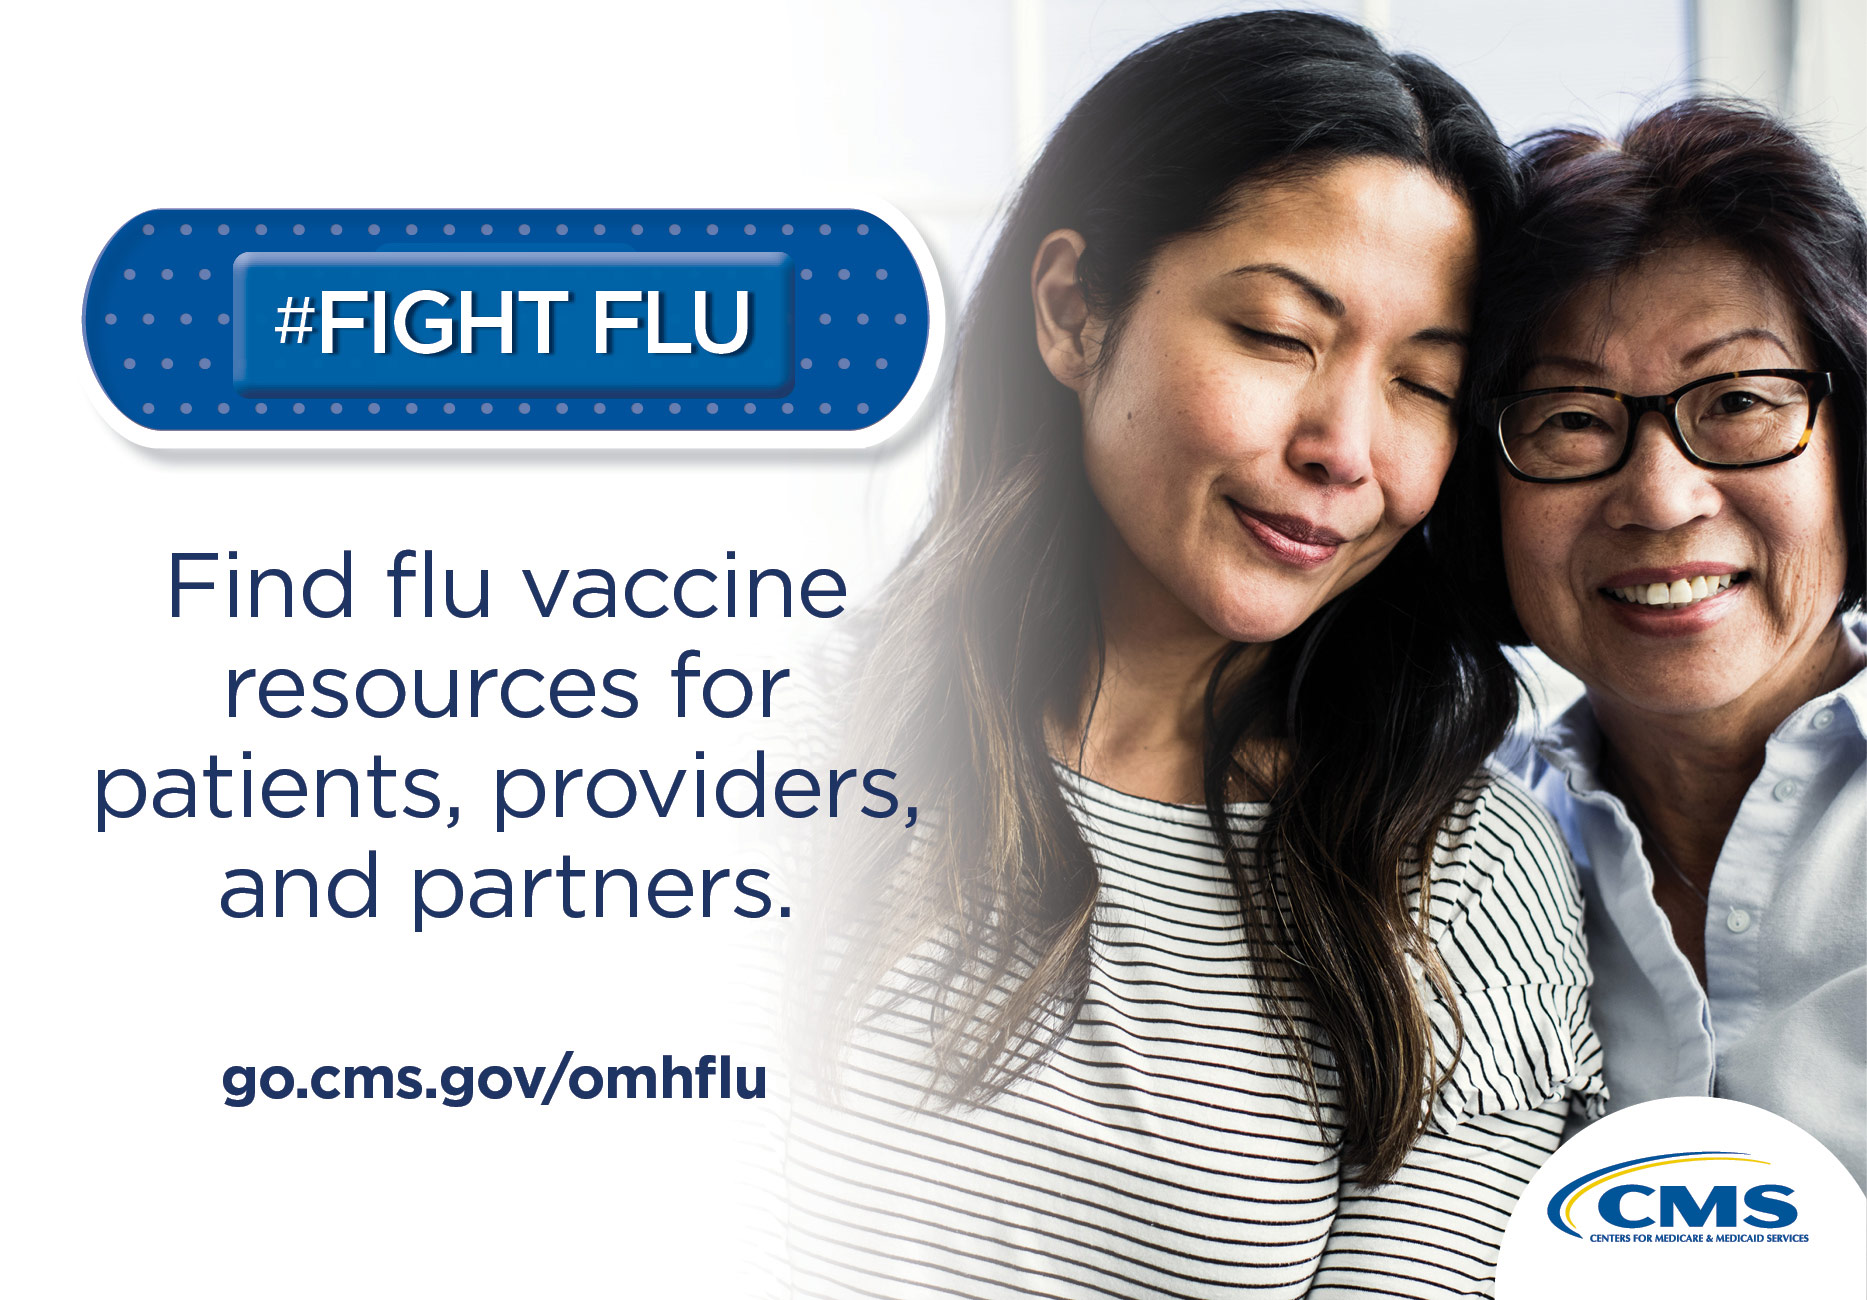 #Fight Flu.  Find flu vaccine resources for patients, providers, and partners.  go.cms.gov/omhflu